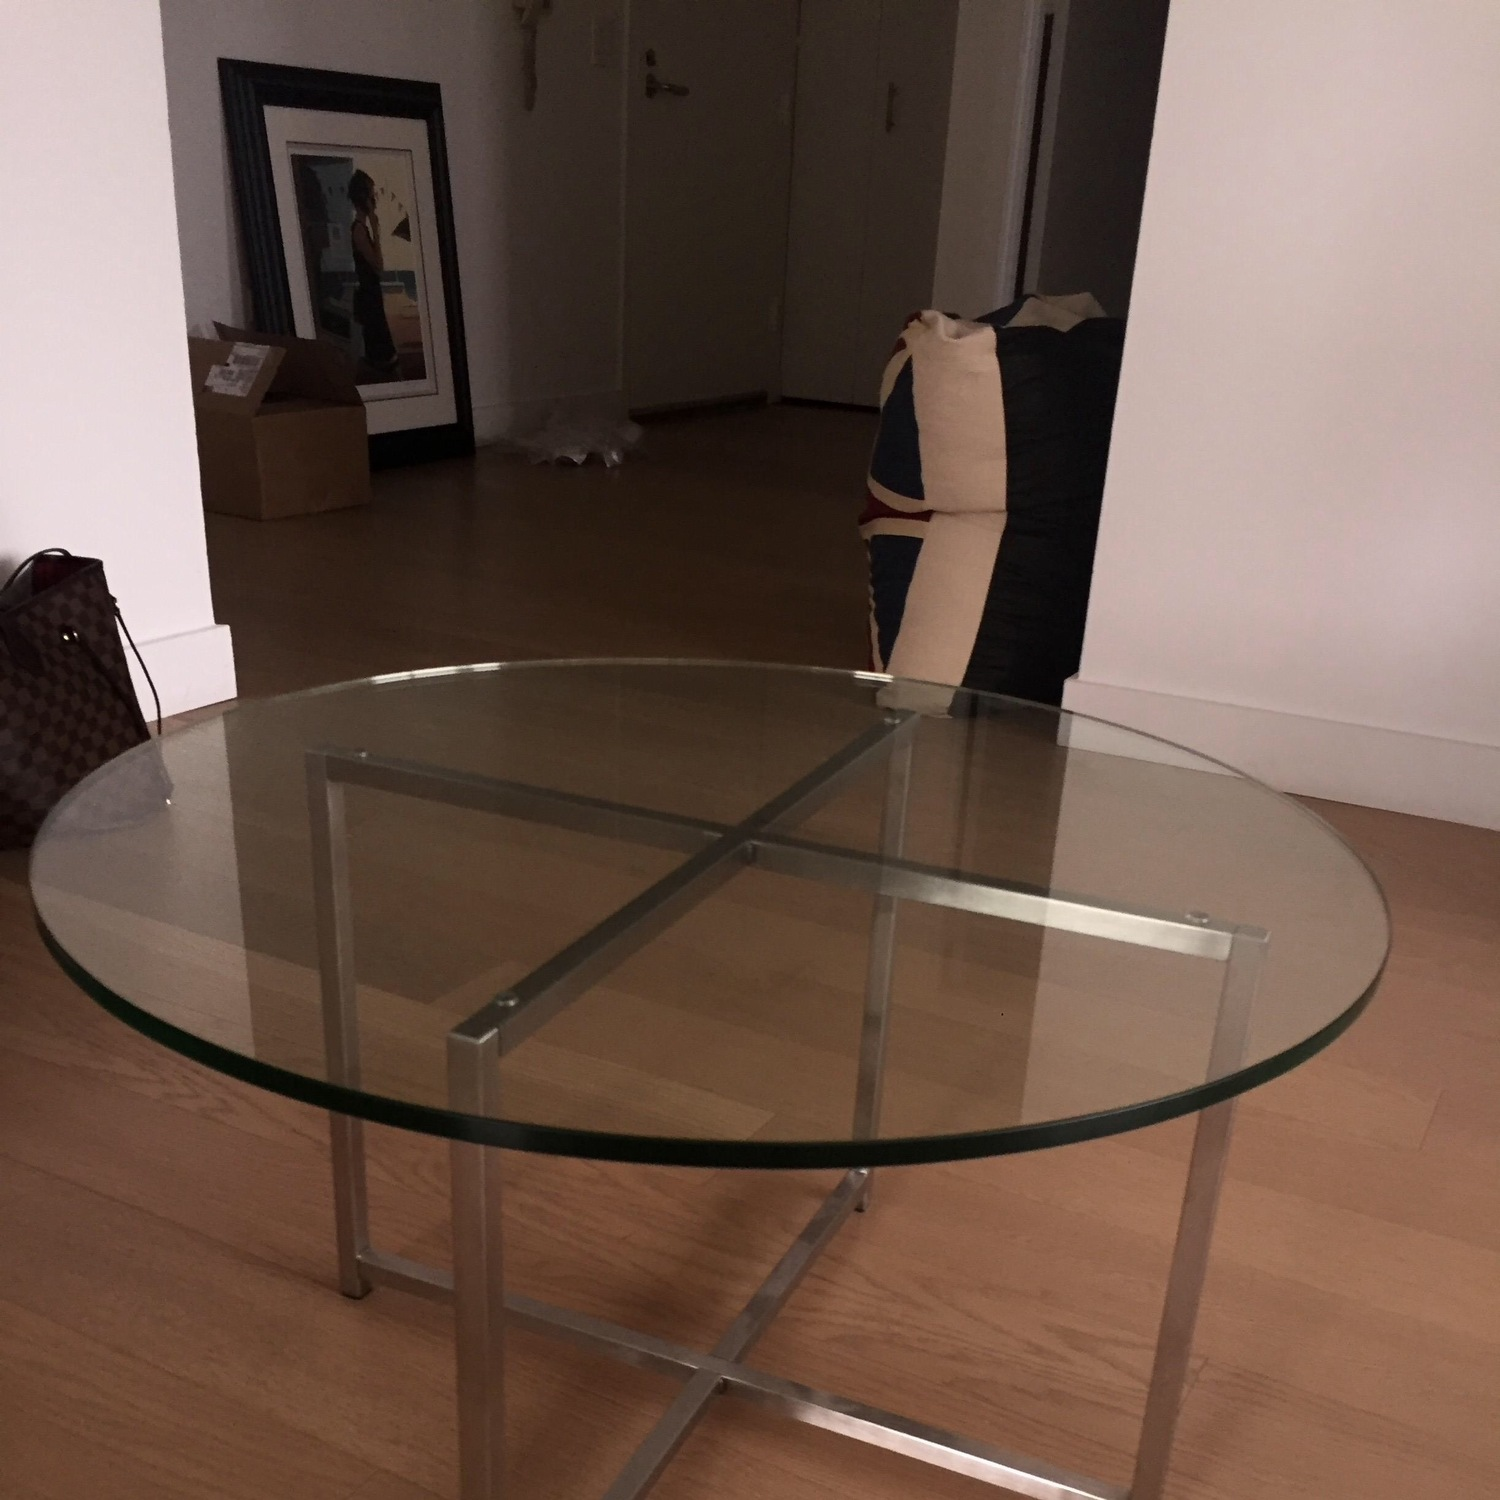 Room & Board Cocktail Table-Stainless Steel Legs - image-0